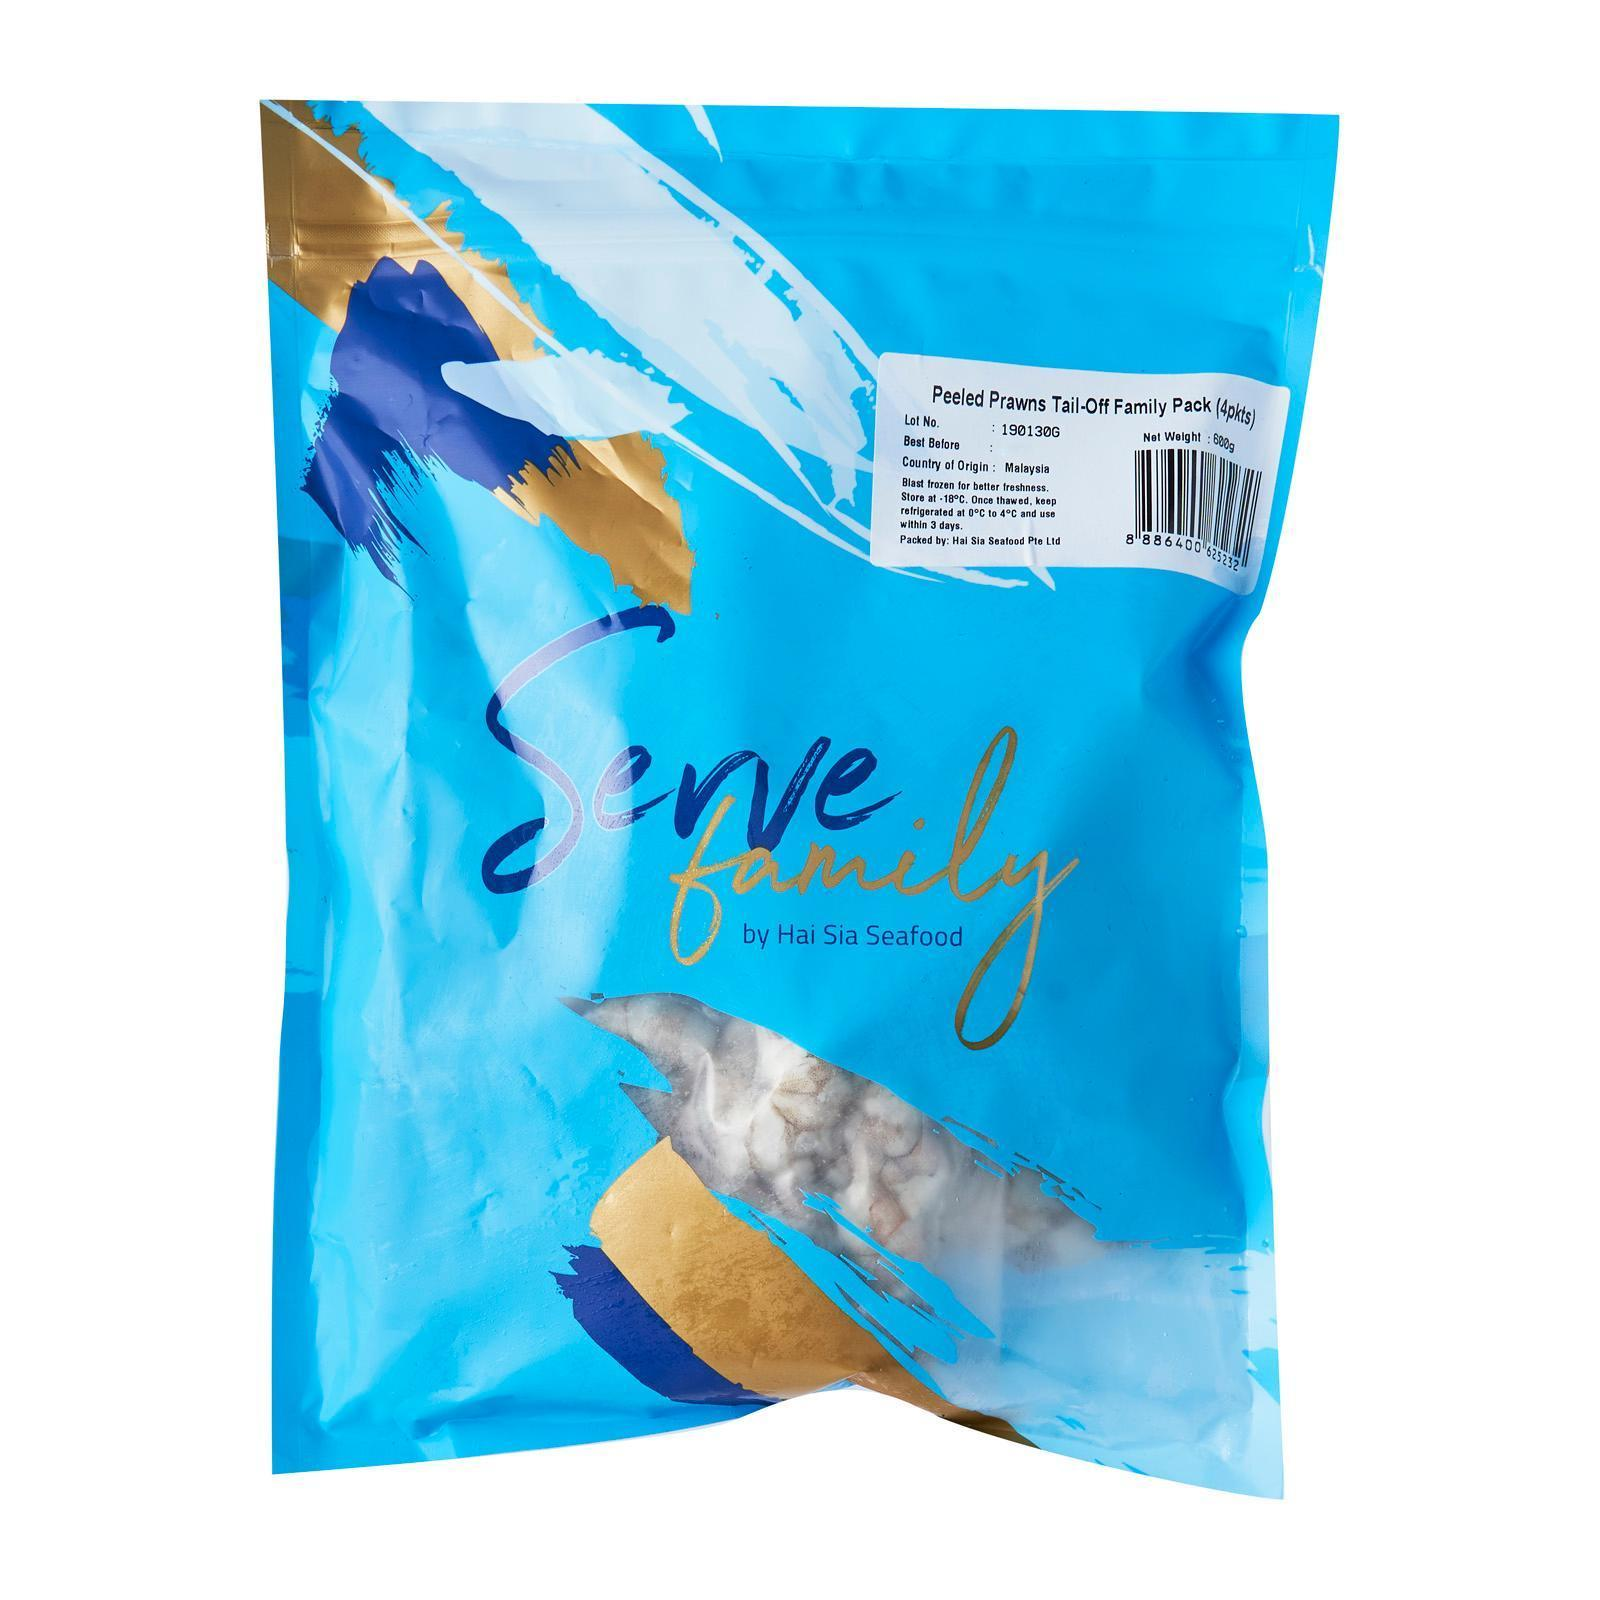 Serve by Hai Sia Seafood Peeled Prawns Tail-Off Family Pack - Frozen